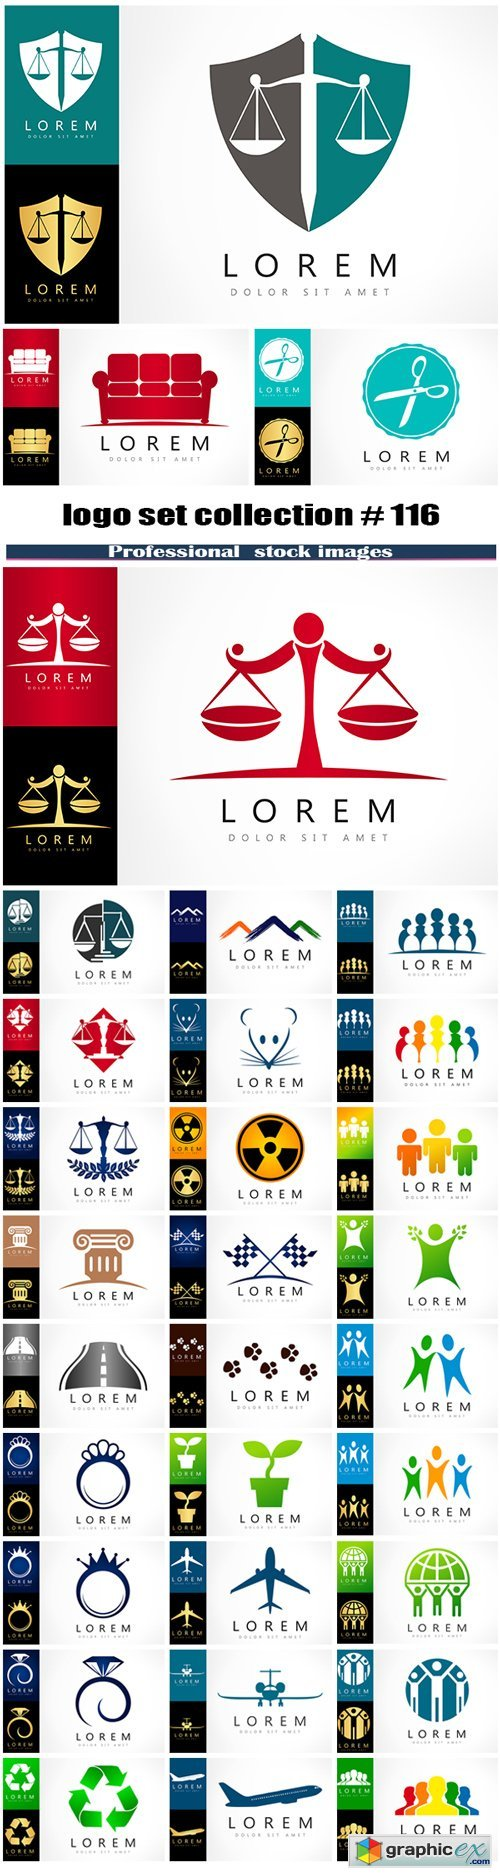 logo set collection # 116